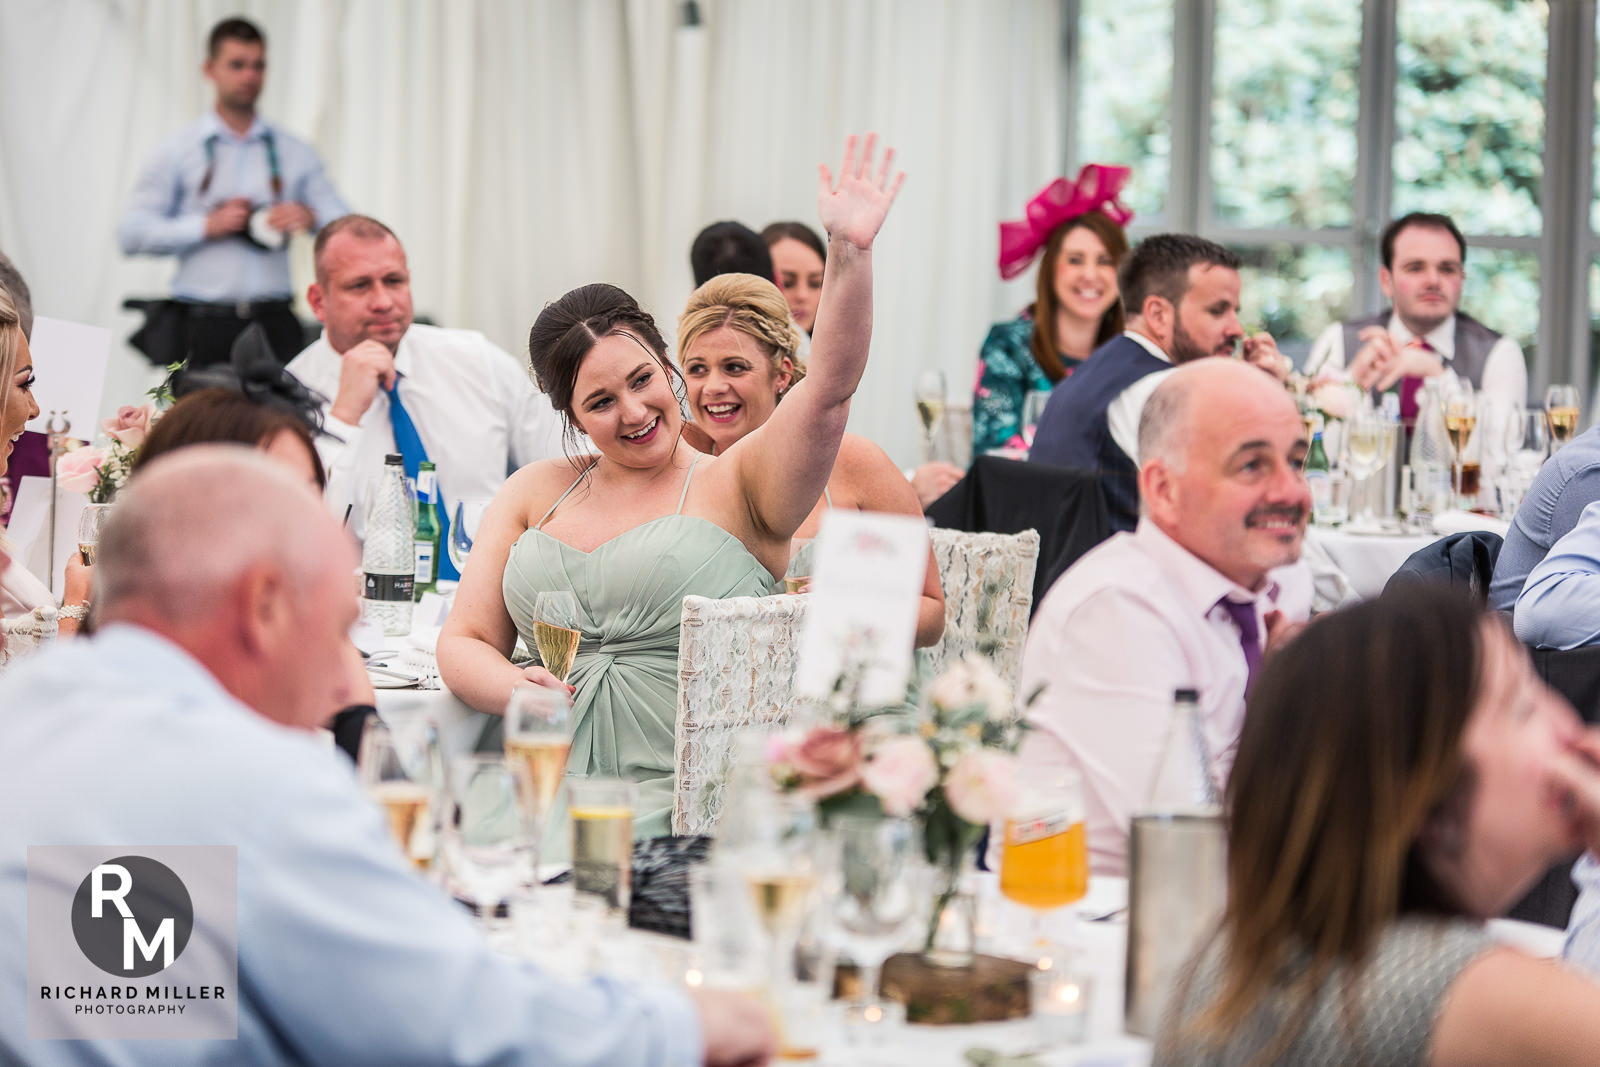 P R 48 - Pete & Roxy's Soughton Hall Outdoor Wedding